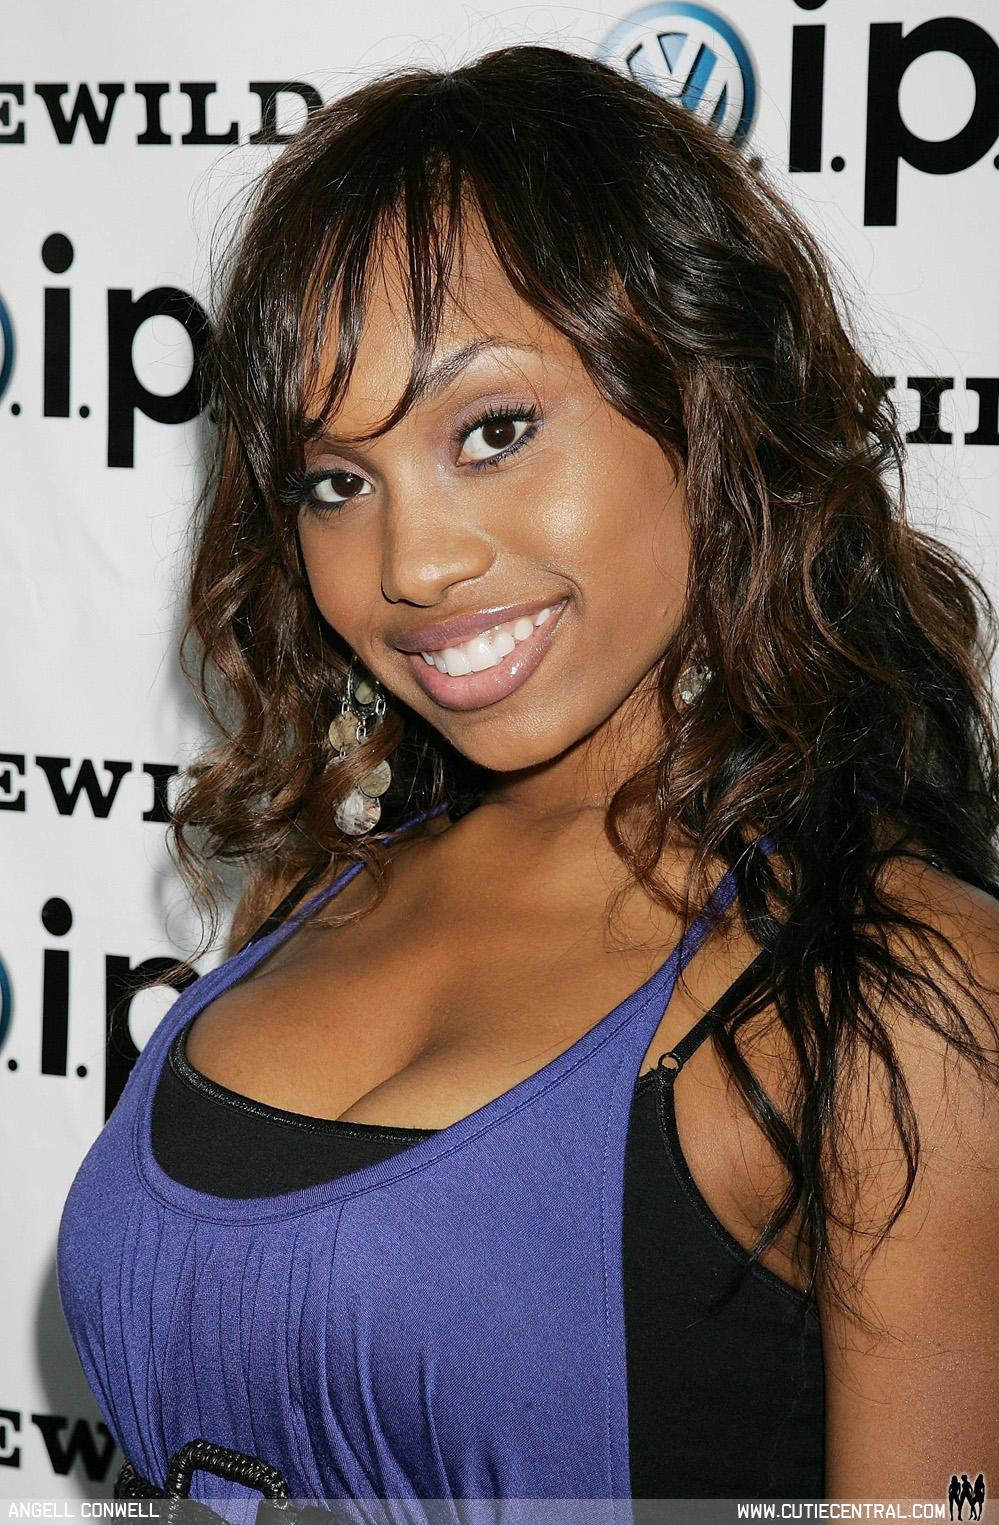 Rather good Angell conwell as grateful